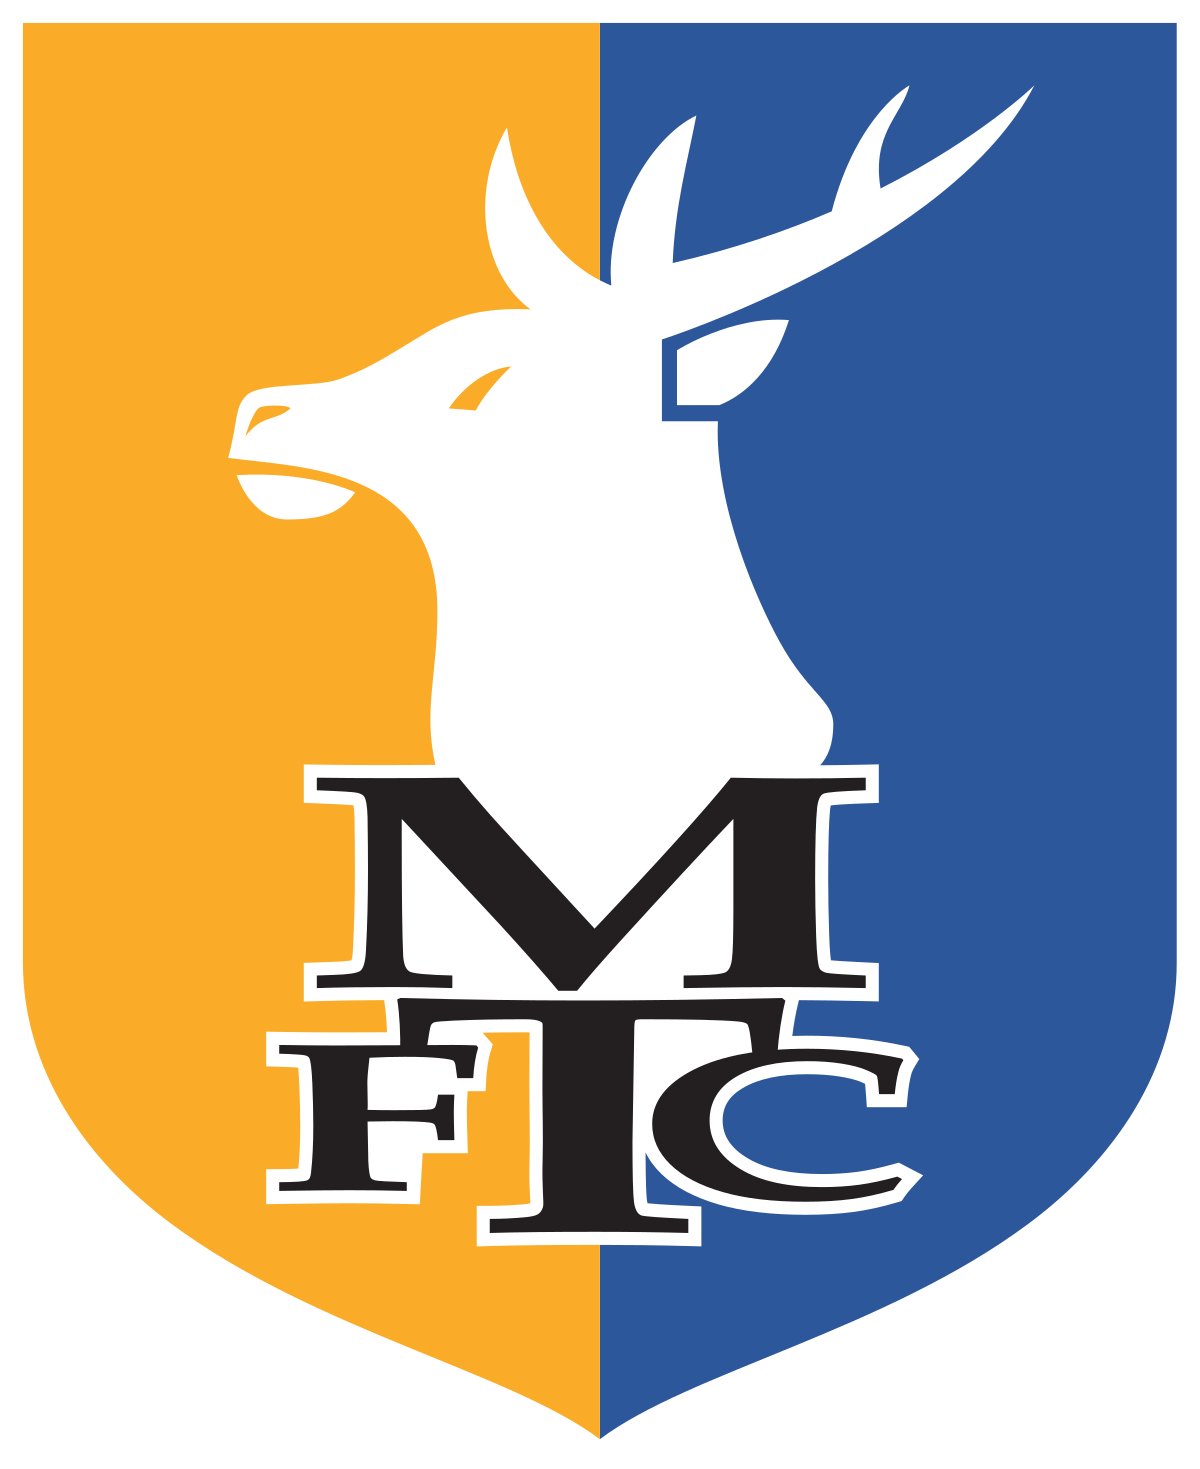 Leyton Orient Vs Mansfield H2h 19 Sep 2020 Head To Head Stats Prediction